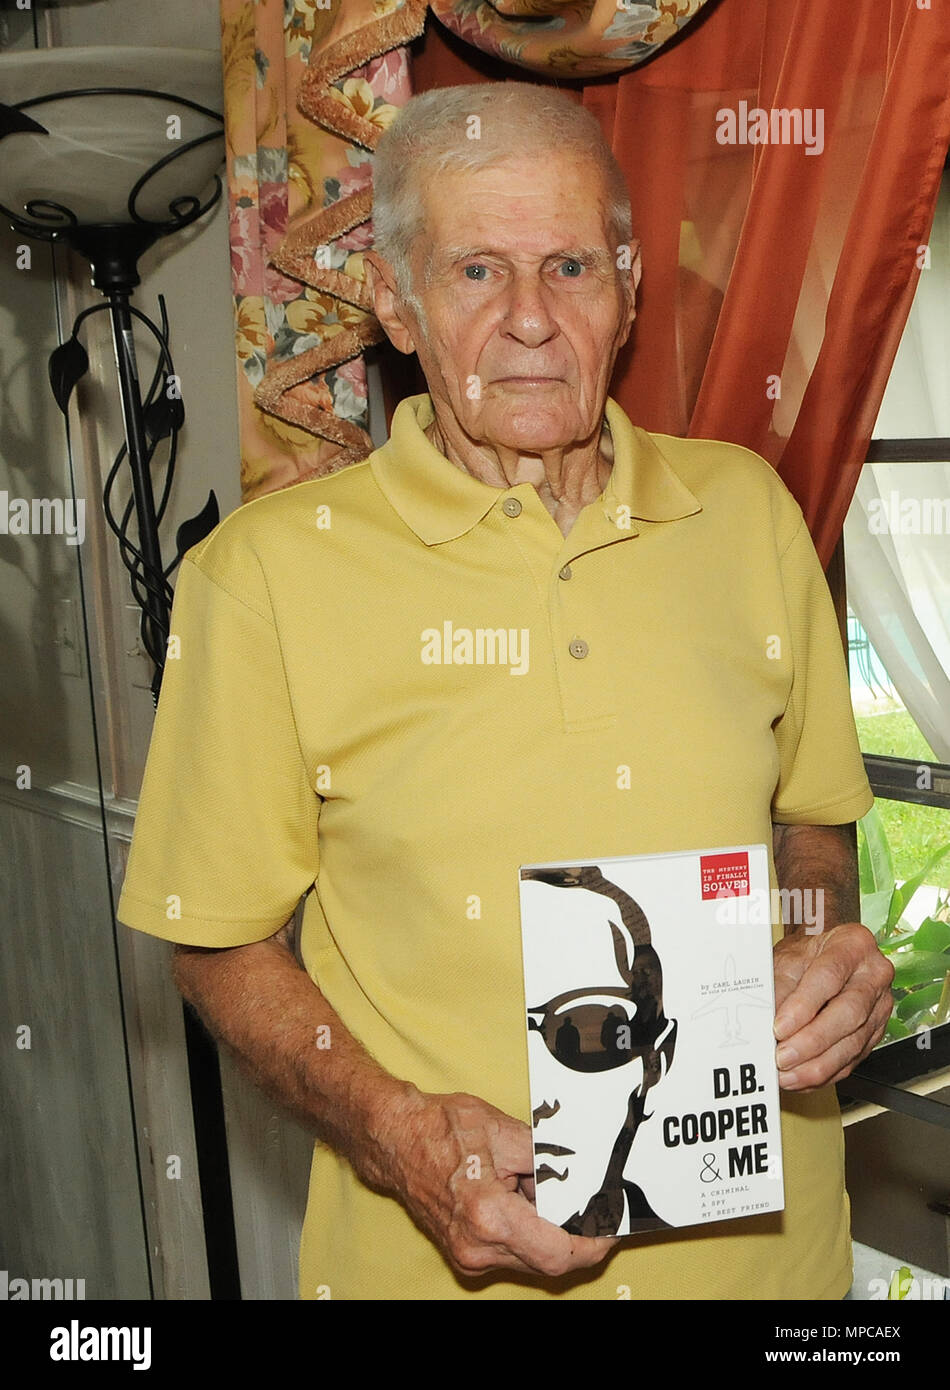 Florida, USA. 22nd May, 2018. Carl Laurin poses on May 22, 2018 at his home in DeLand, Florida with a copy of his book, 'D.B. Cooper & Me: A Criminal, a Spy, My Best Friend', which was released on May 17, 2018. The book chronicles the confessions of Laurin's longtime friend, Walter R. Reca, who, around 2008, related to Laurin that he committed the infamous 1971 hijacking of a Northwest Orient flight from Portland to Seattle. Credit: Paul Hennessy/Alamy Live News - Stock Image